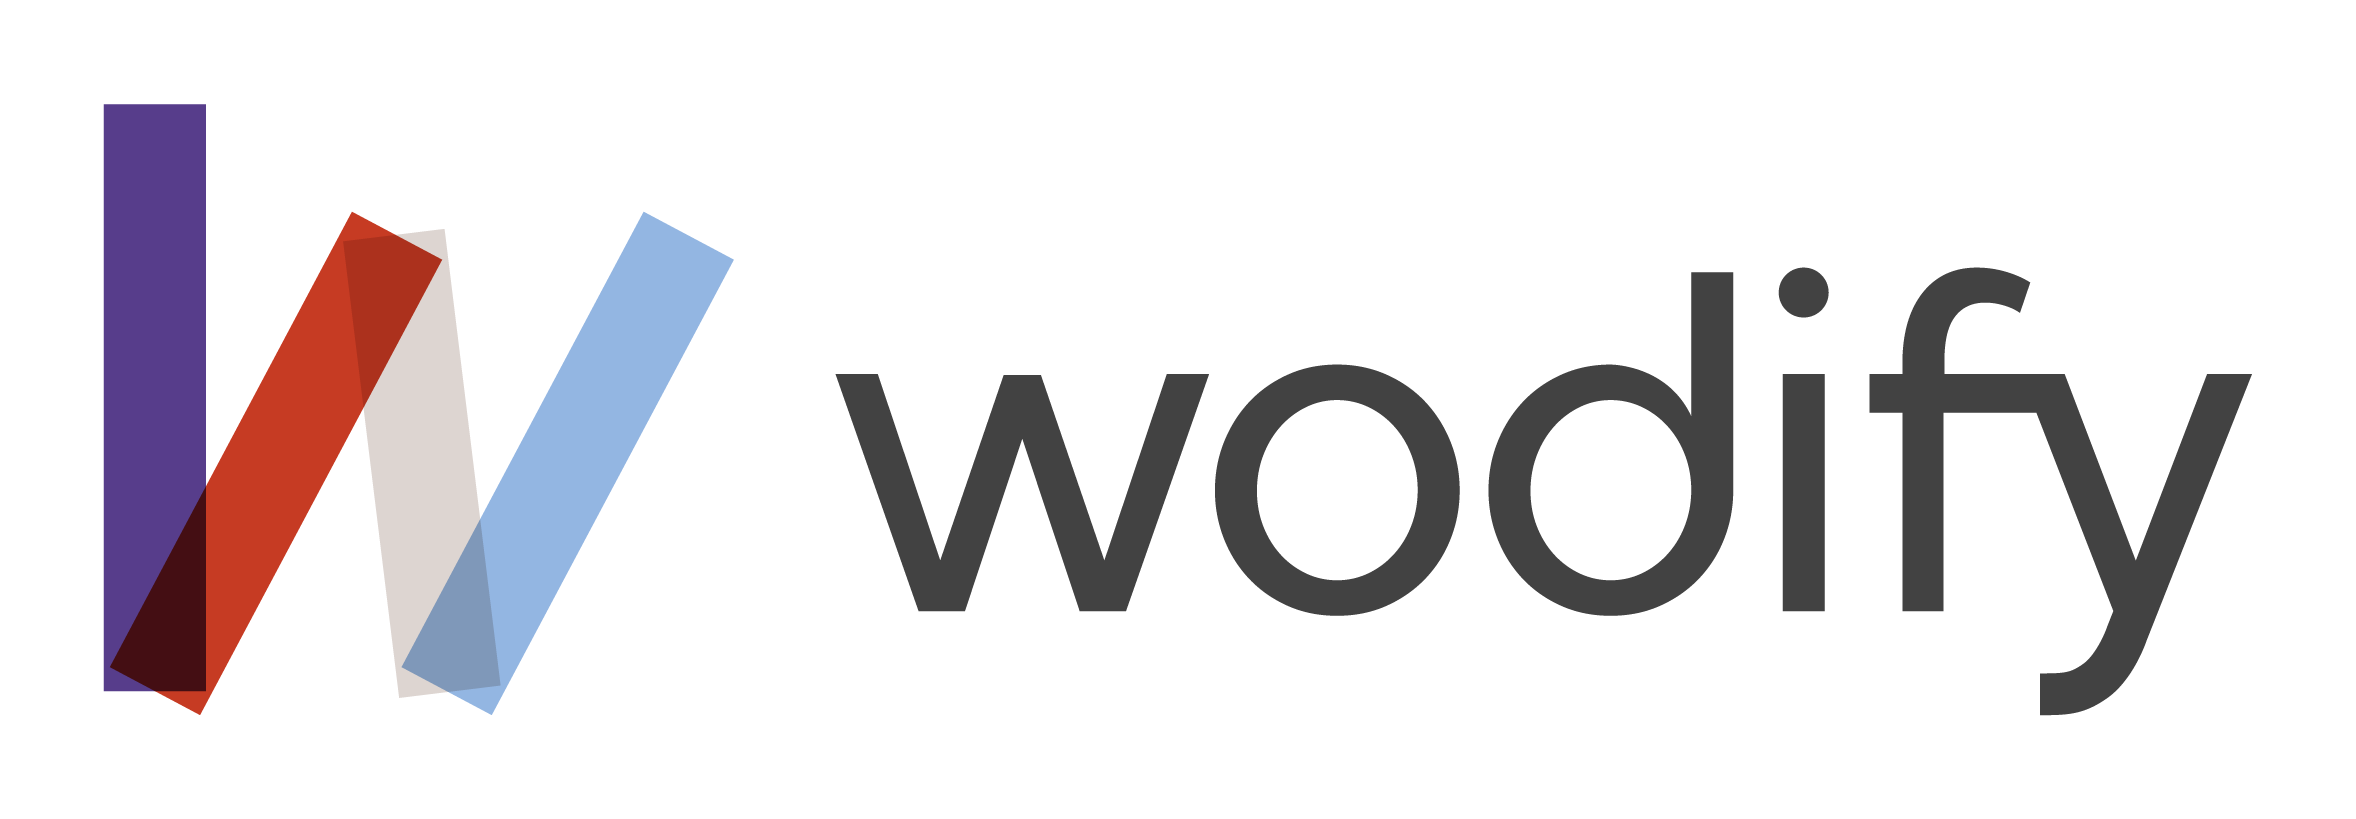 Wodify: Results in a box